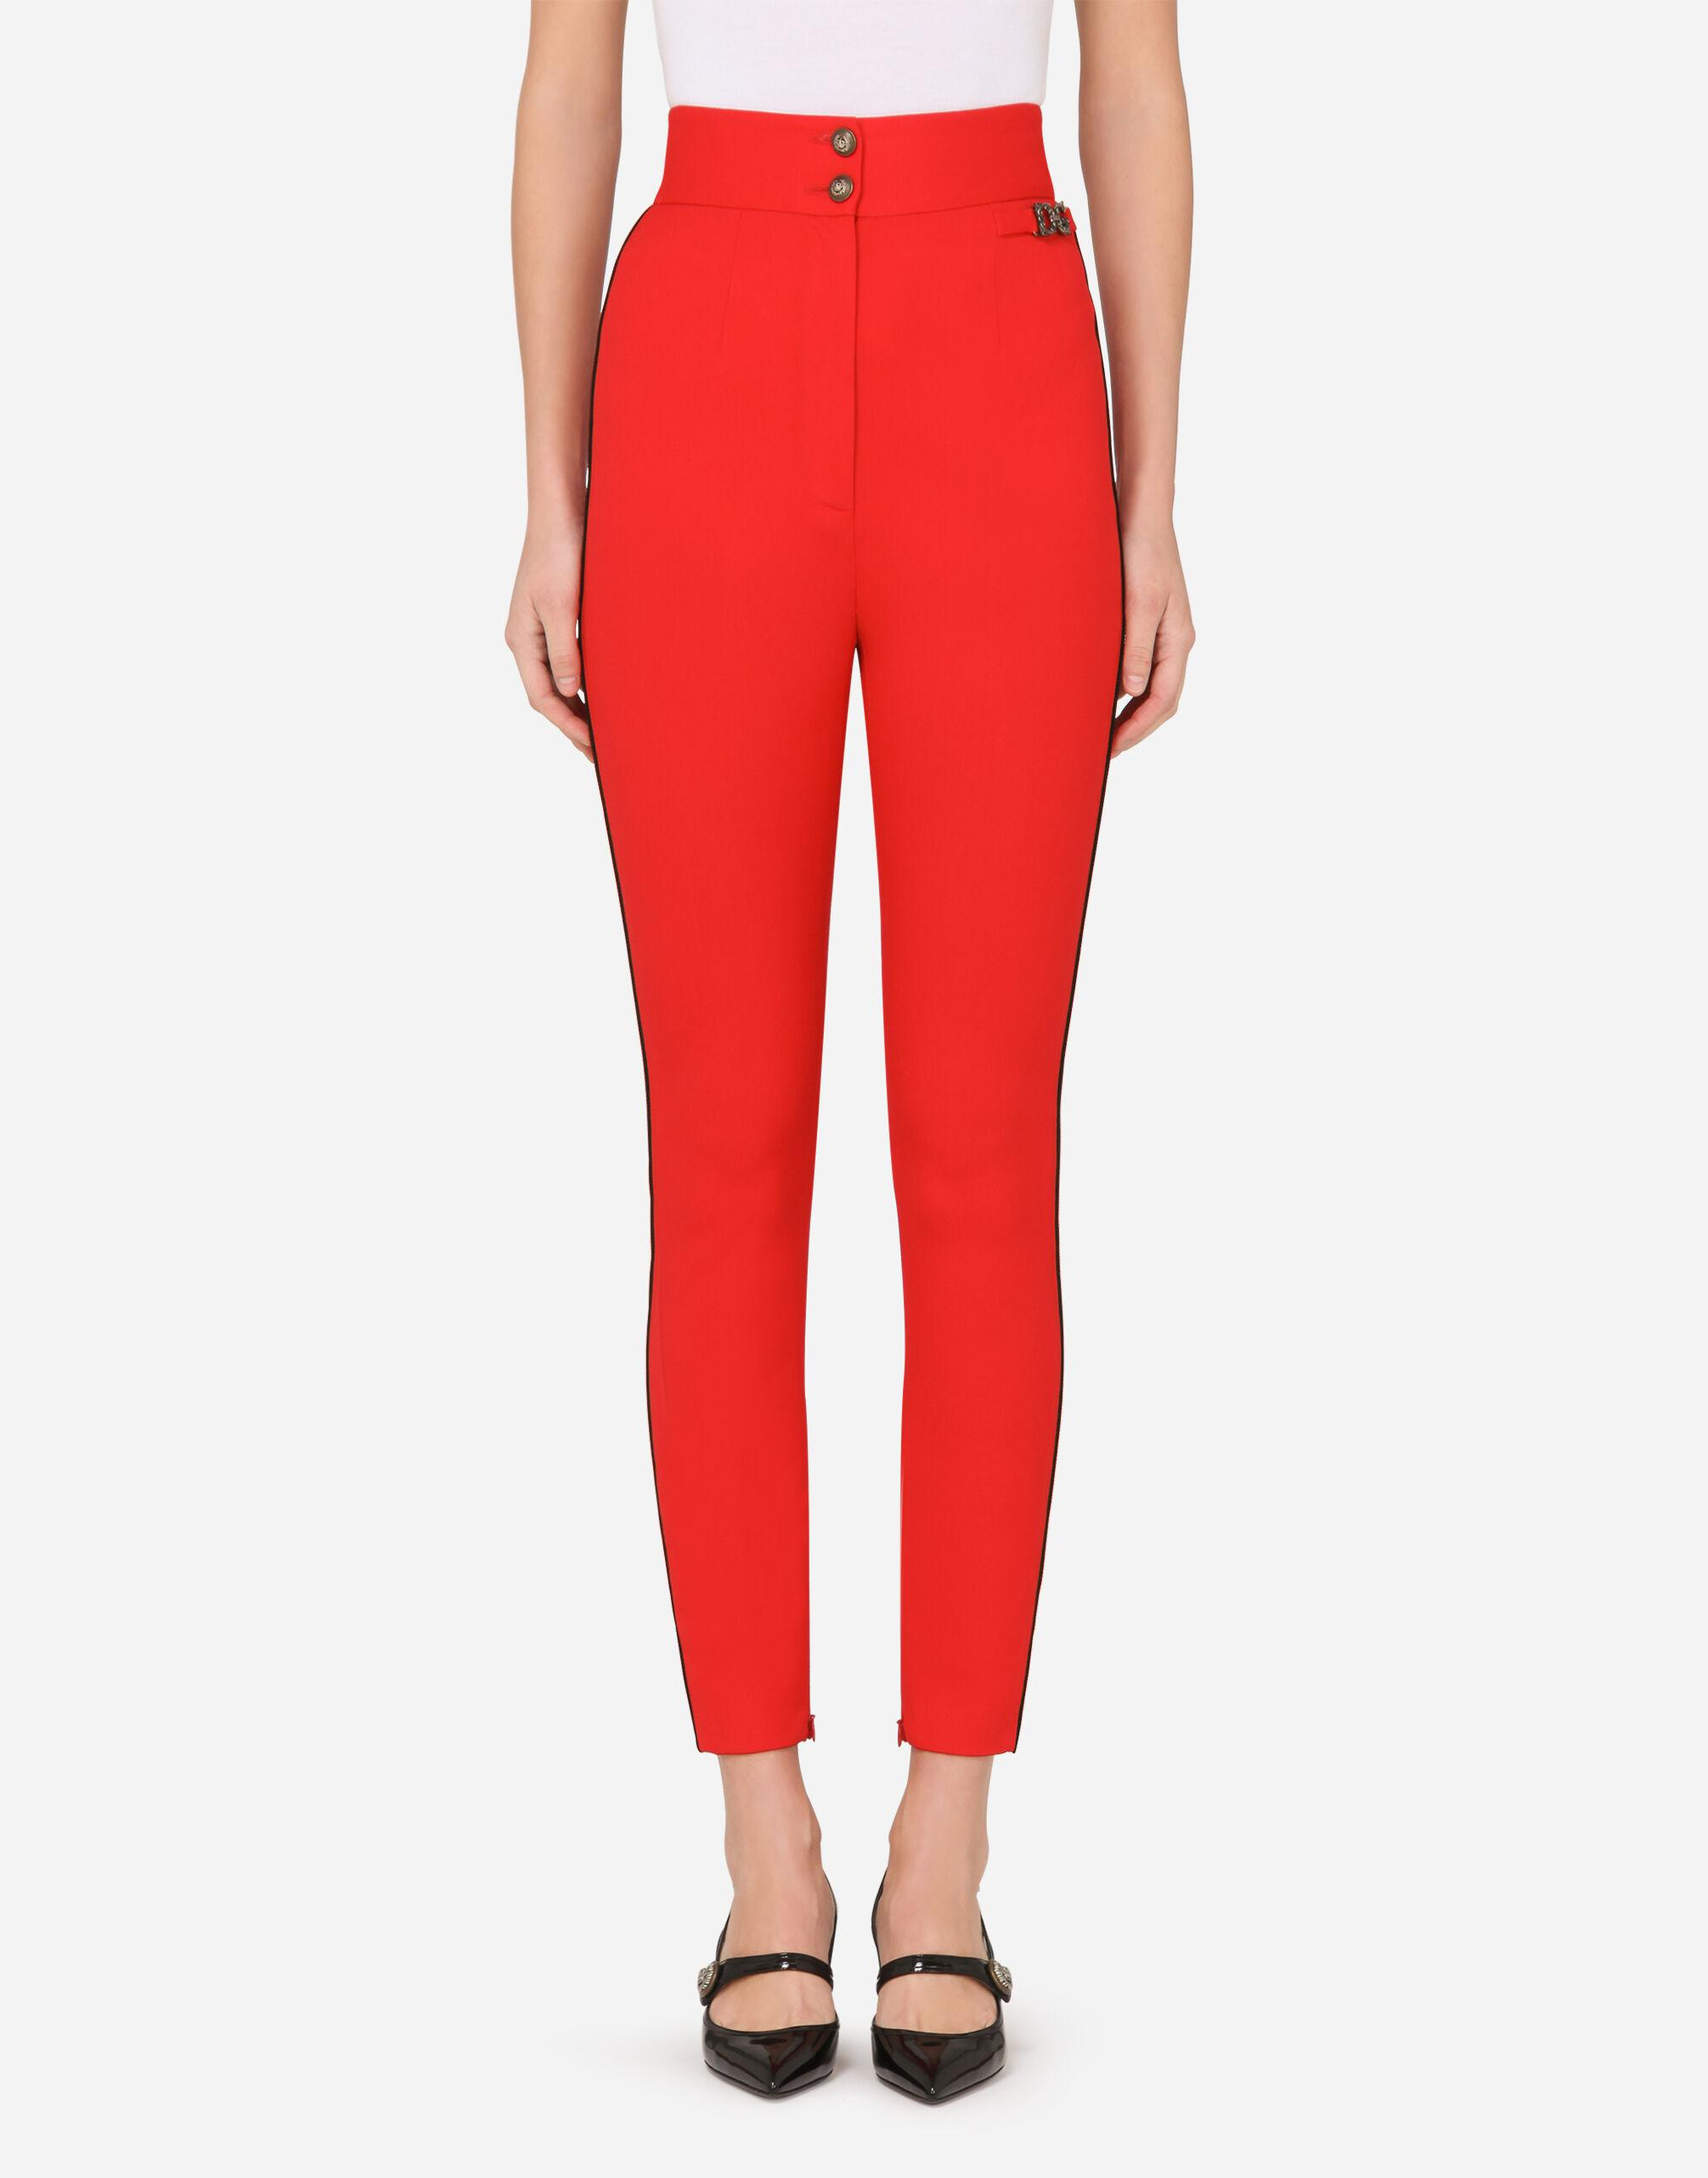 High-waisted wool twill leggings with DG detail